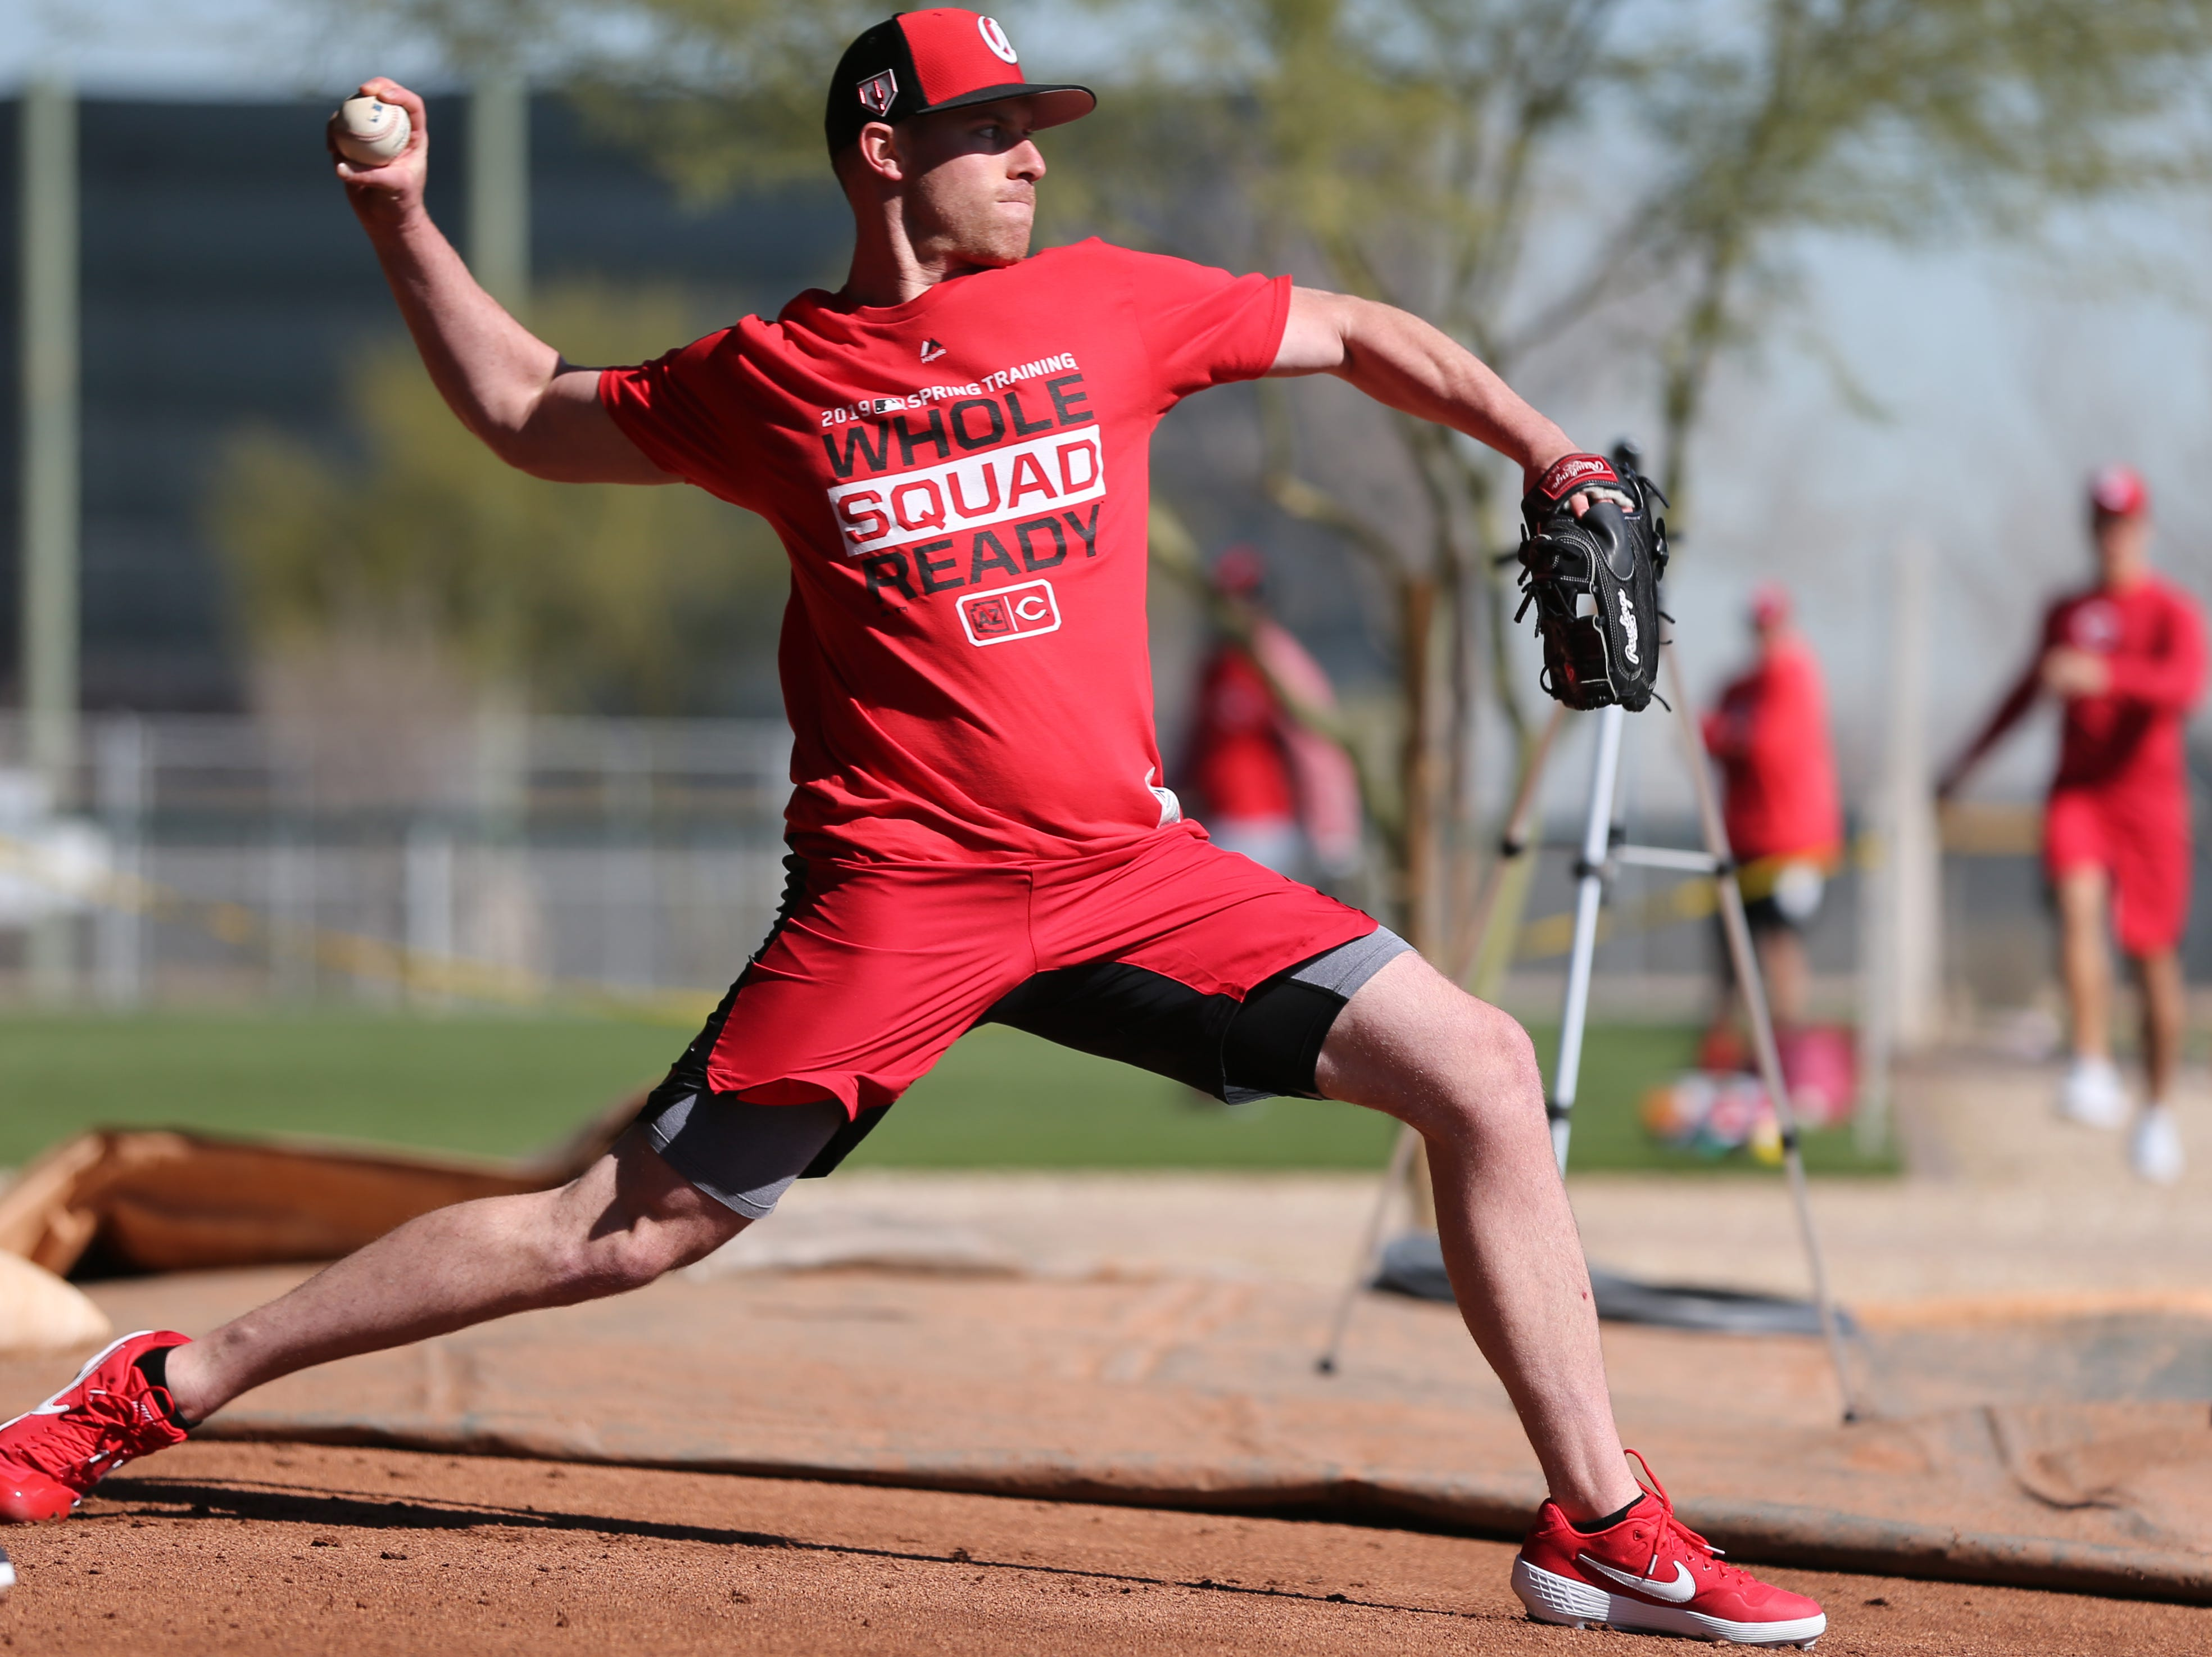 Cincinnati Reds pitcher Anthony DeSclafani delivers as he throws in the bullpen on report day for pitchers and catchers, Tuesday, Feb. 12, 2019, at the Cincinnati Reds spring training facility in Goodyear, Arizona.